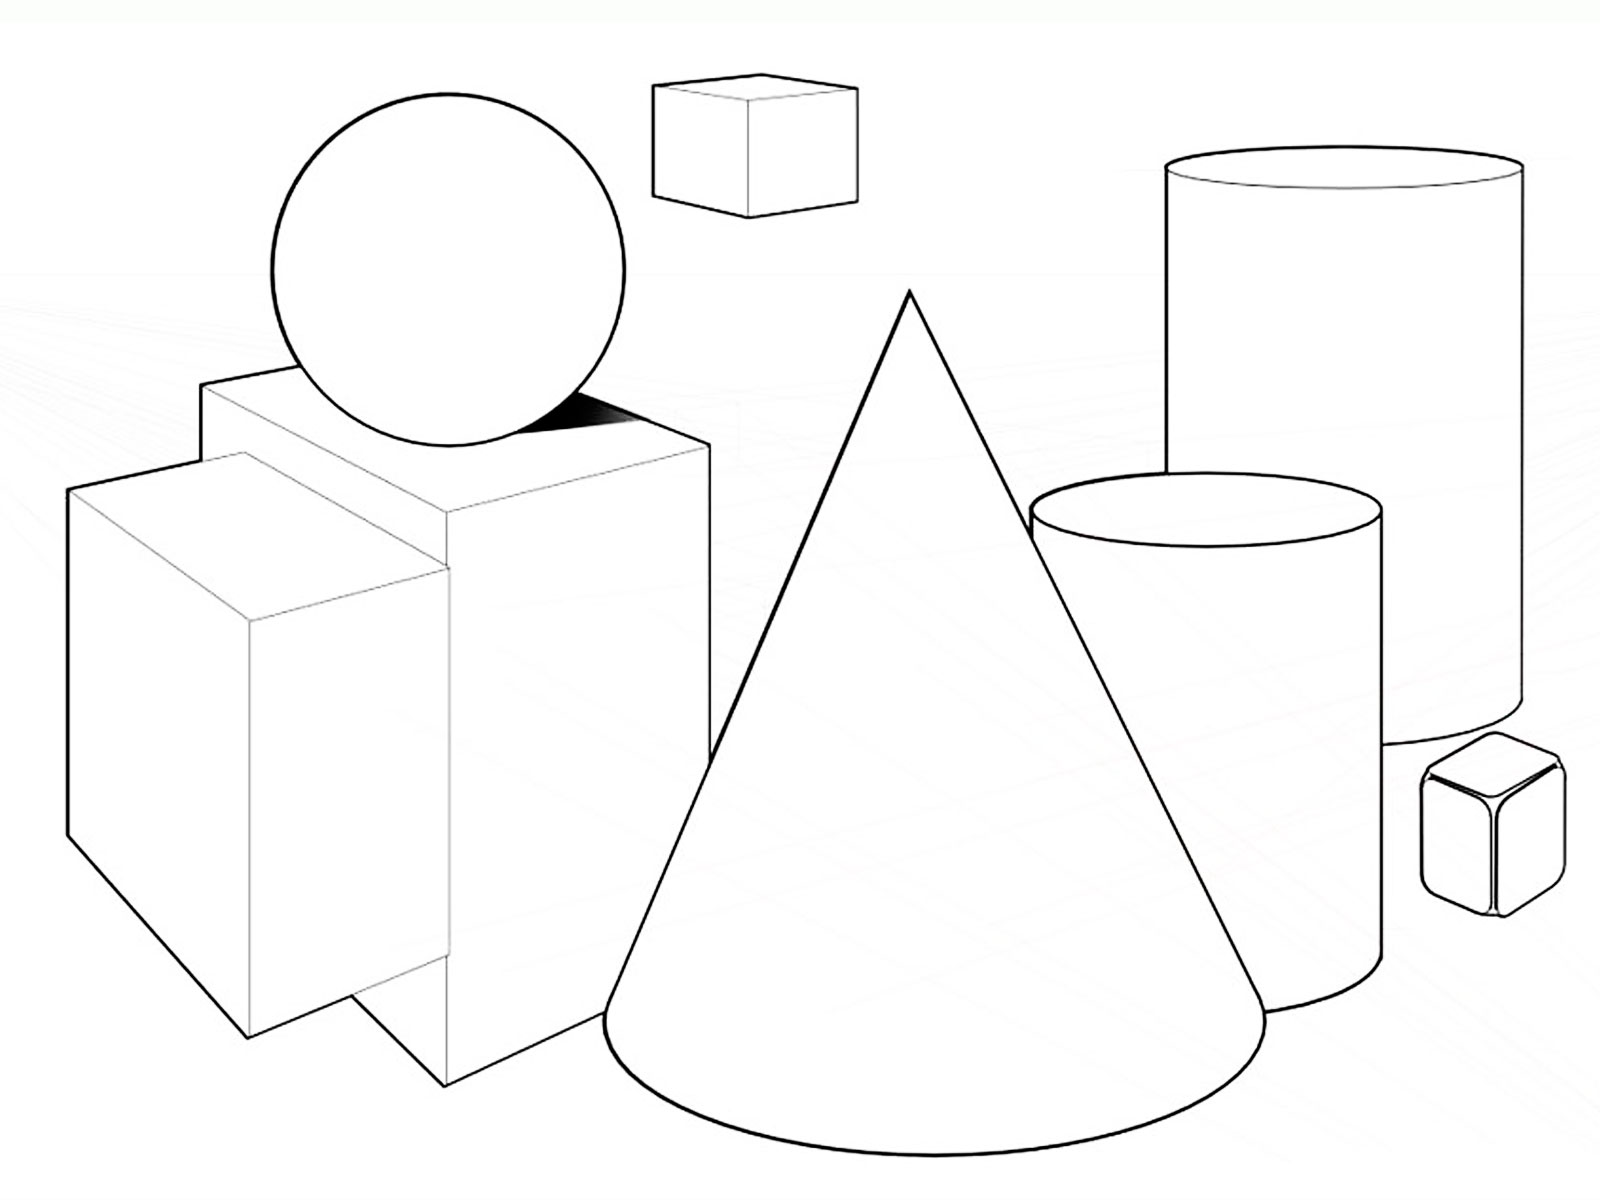 Drawn shapes geometric shape Coloring Printable Pages Geometric Pages